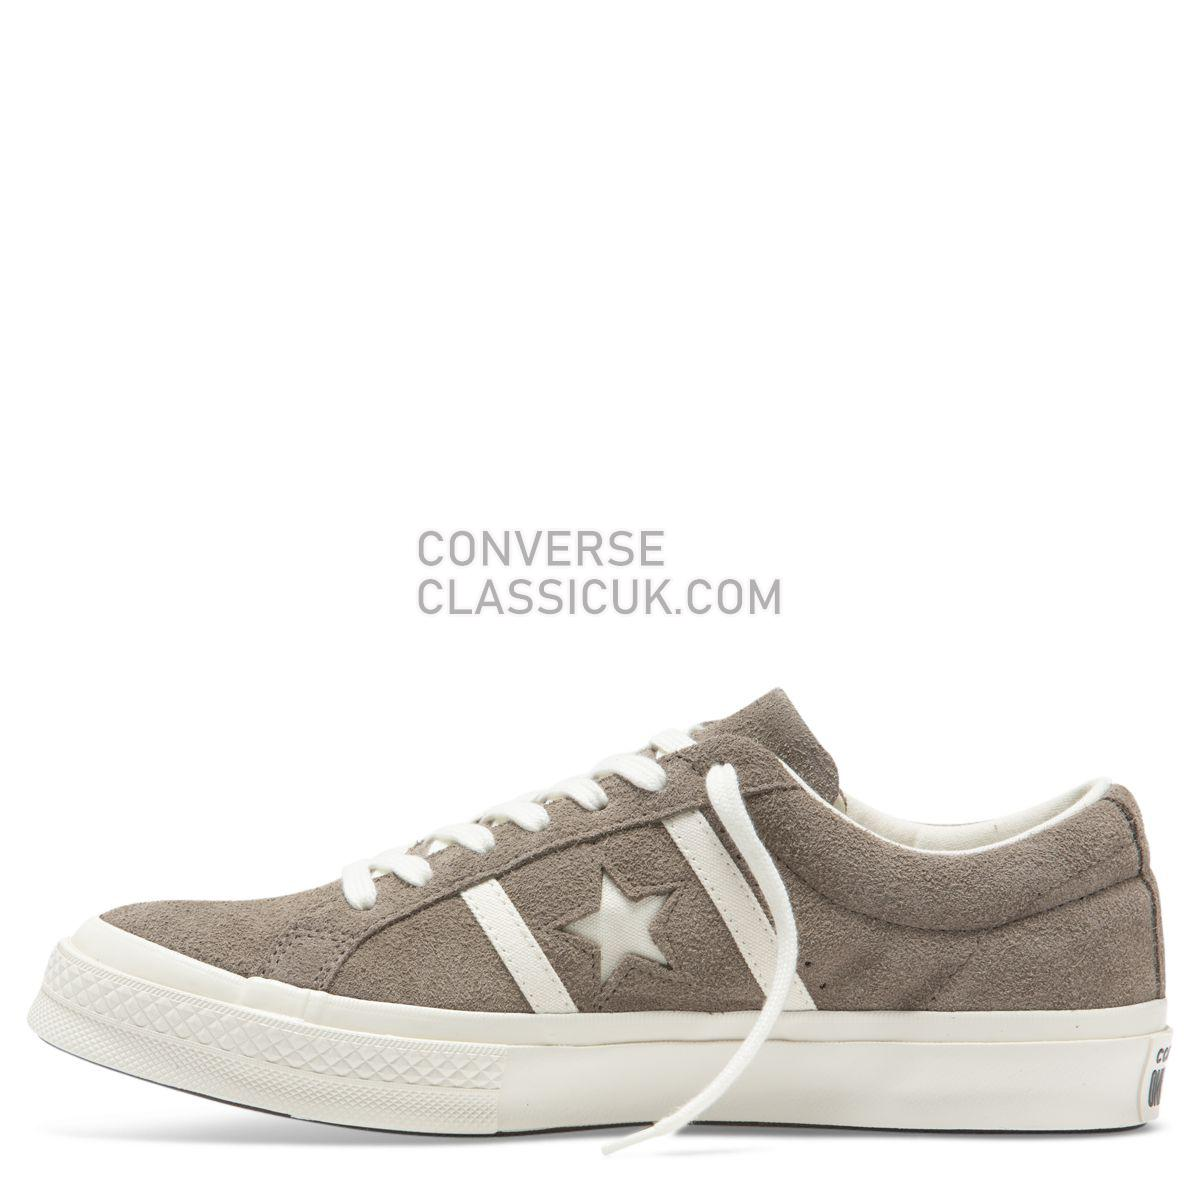 Converse One Star Academy Time Capsule Low Top Mason Taupe Mens Womens Unisex 165042 Mason Taupe/Egret/Egret Shoes